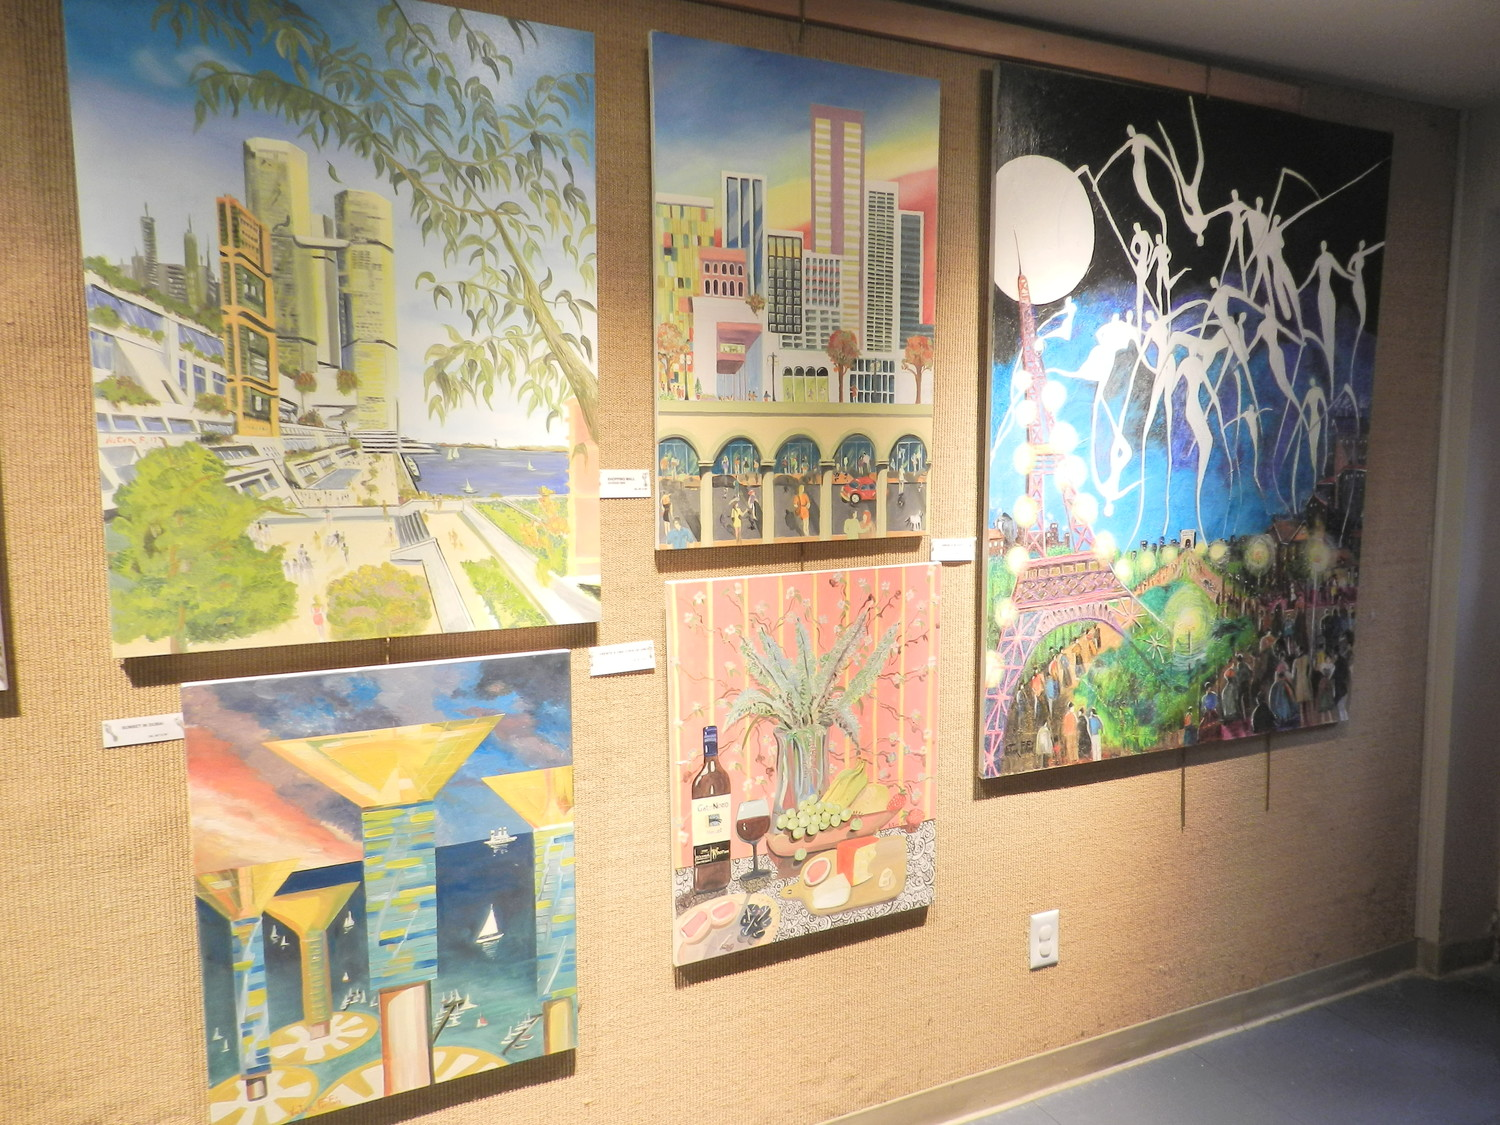 Peruvian painter gives the gift of art to Glen Cove | Herald ...